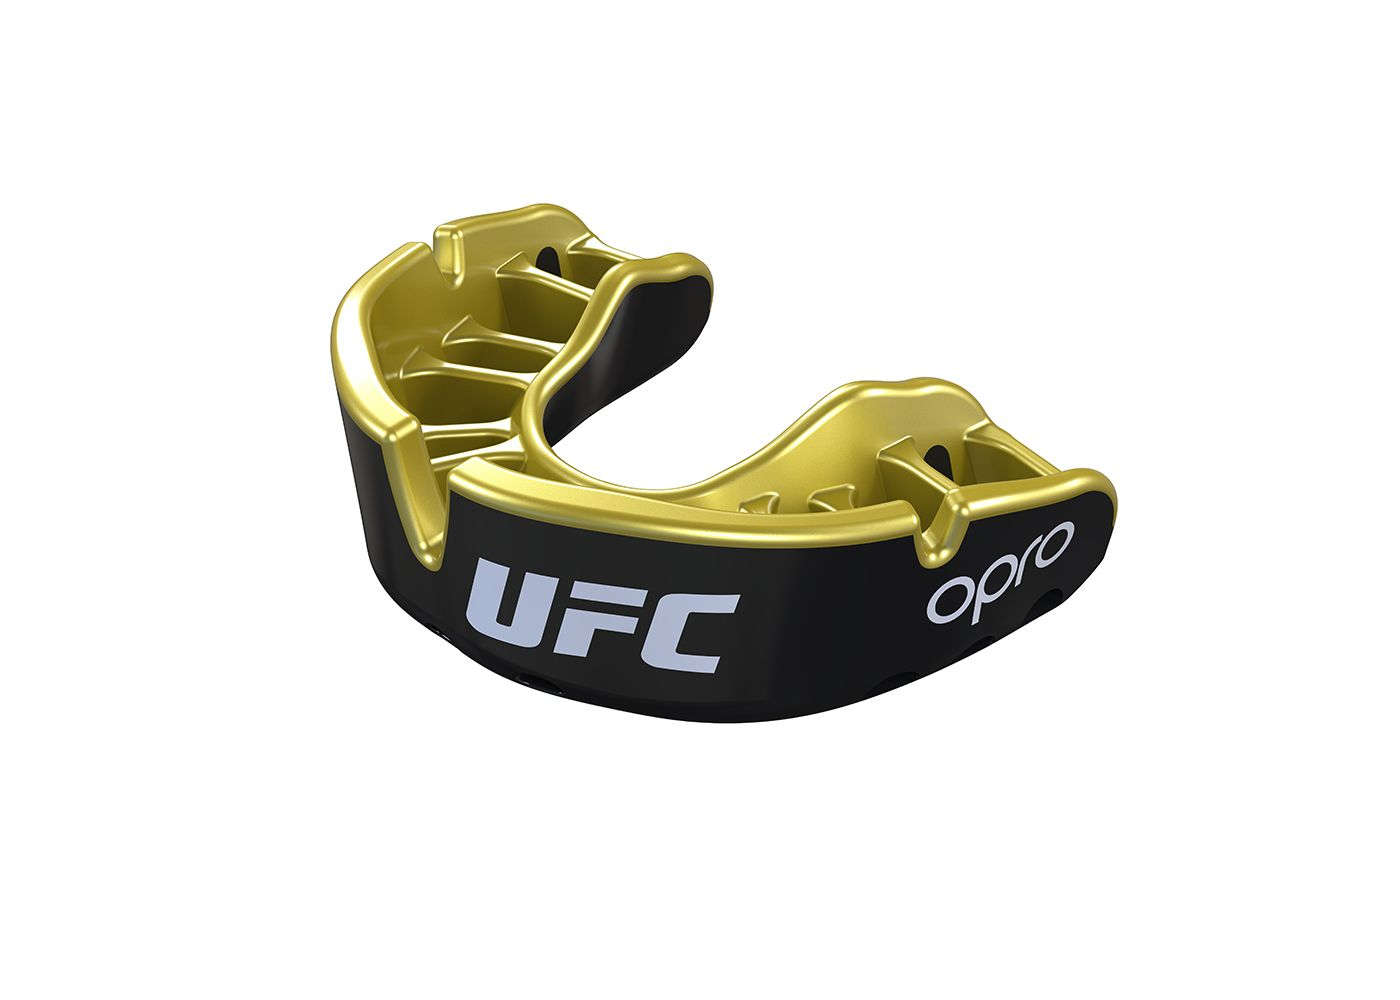 OPRO Adult UFC Gold Mouthguard